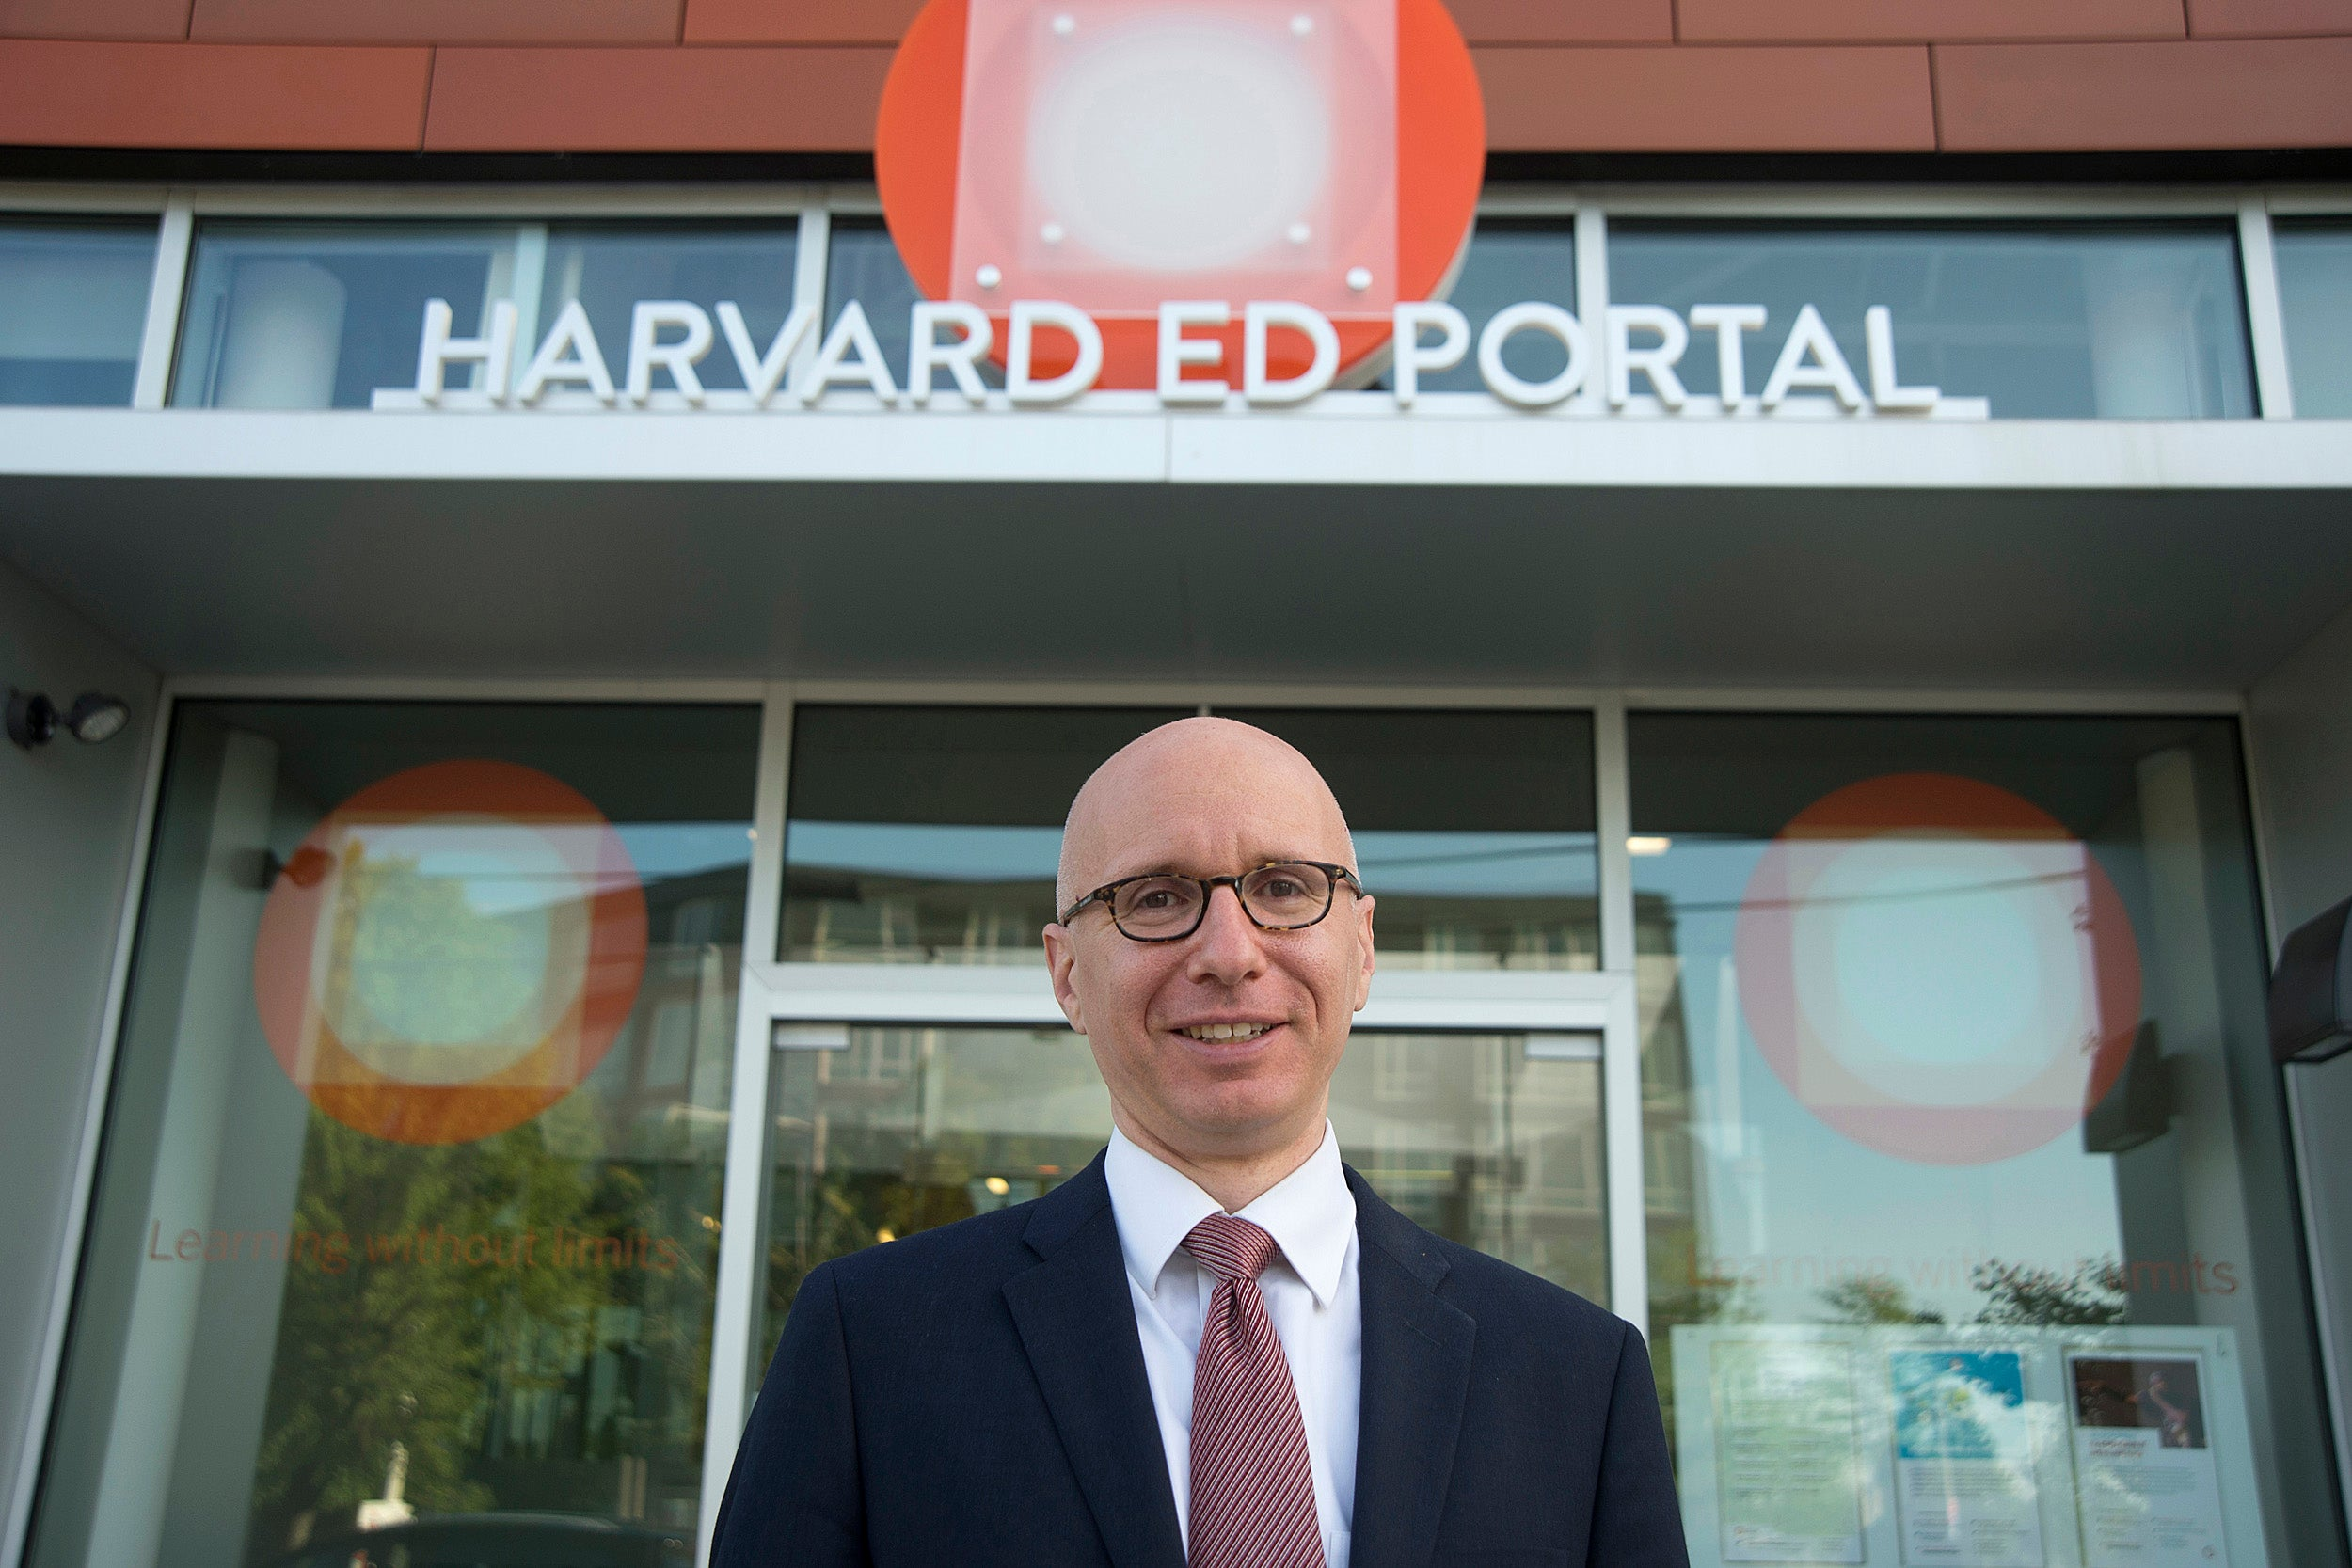 """Poor diet and air pollution are two of the leading drivers of disease across the world, according to Aaron Bernstein, associate director for the Center for Health and the Global Environment, who lectured on """"The Health Benefits of Going Green"""" as part of the Ed Portal's Faculty Speaker Series."""